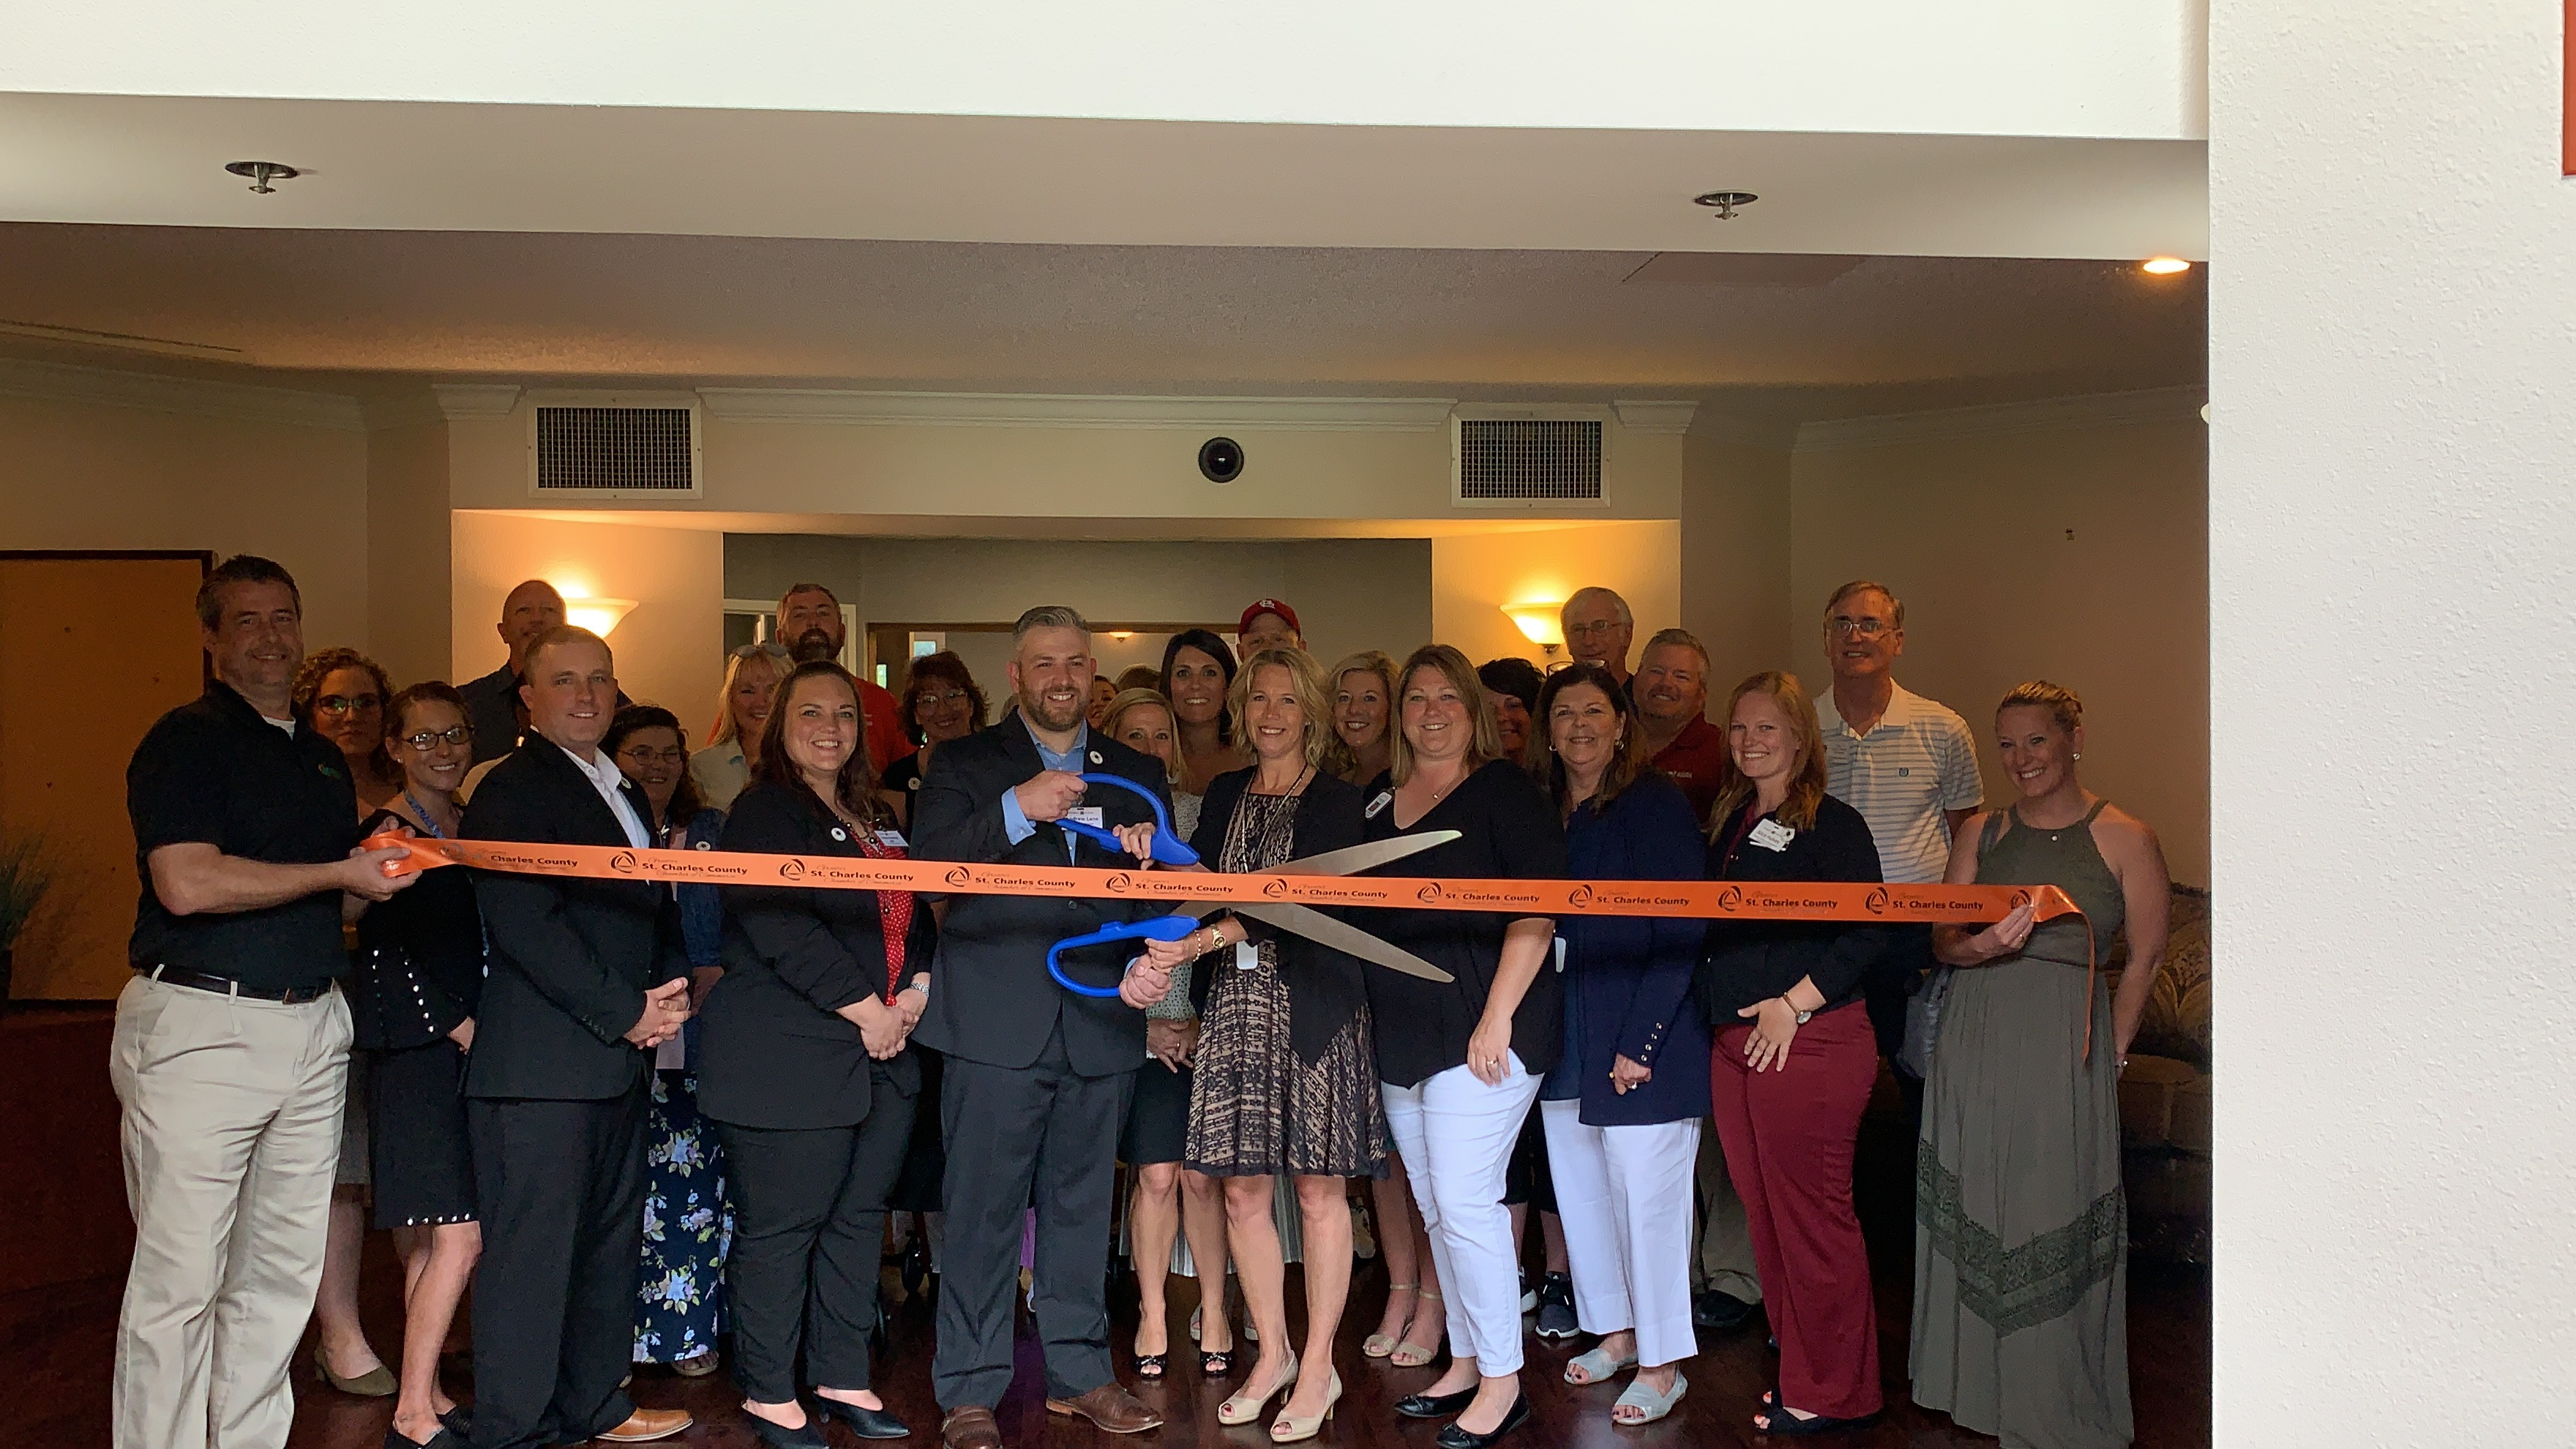 Windsor Estates Celebrates Partnership with Envision Health & Wellness with Ribbon Cutting